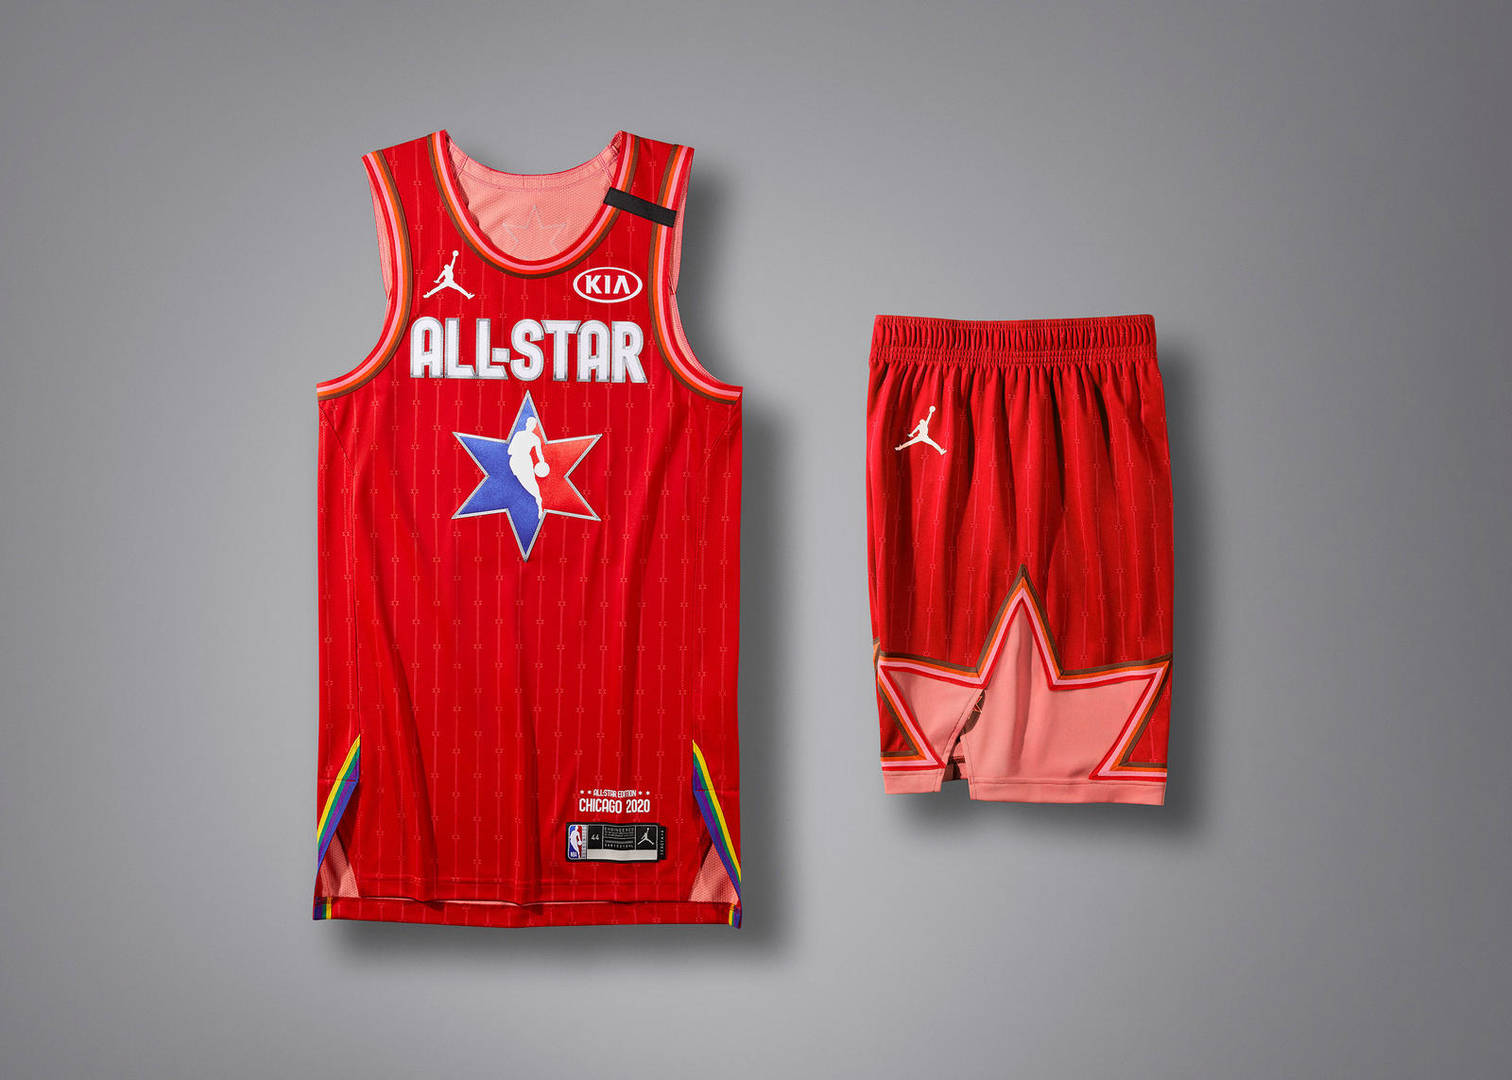 2020 NBA All Star Uniforms Revealed: First Look At The Eight Designs